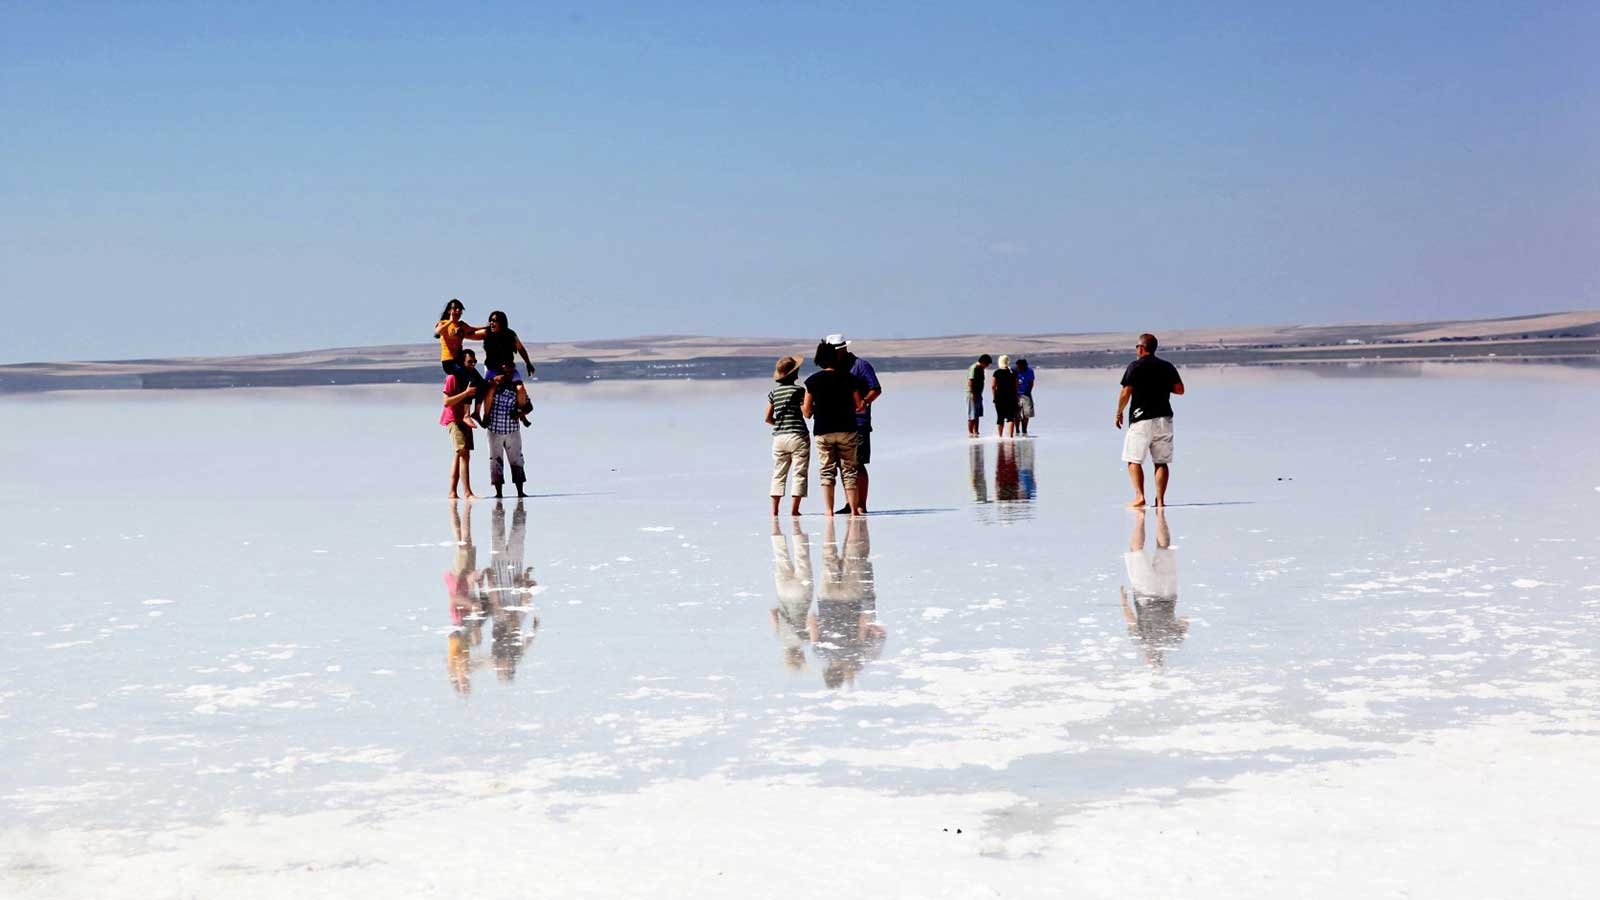 Tuz Golu (Salt Lake) in Turkey